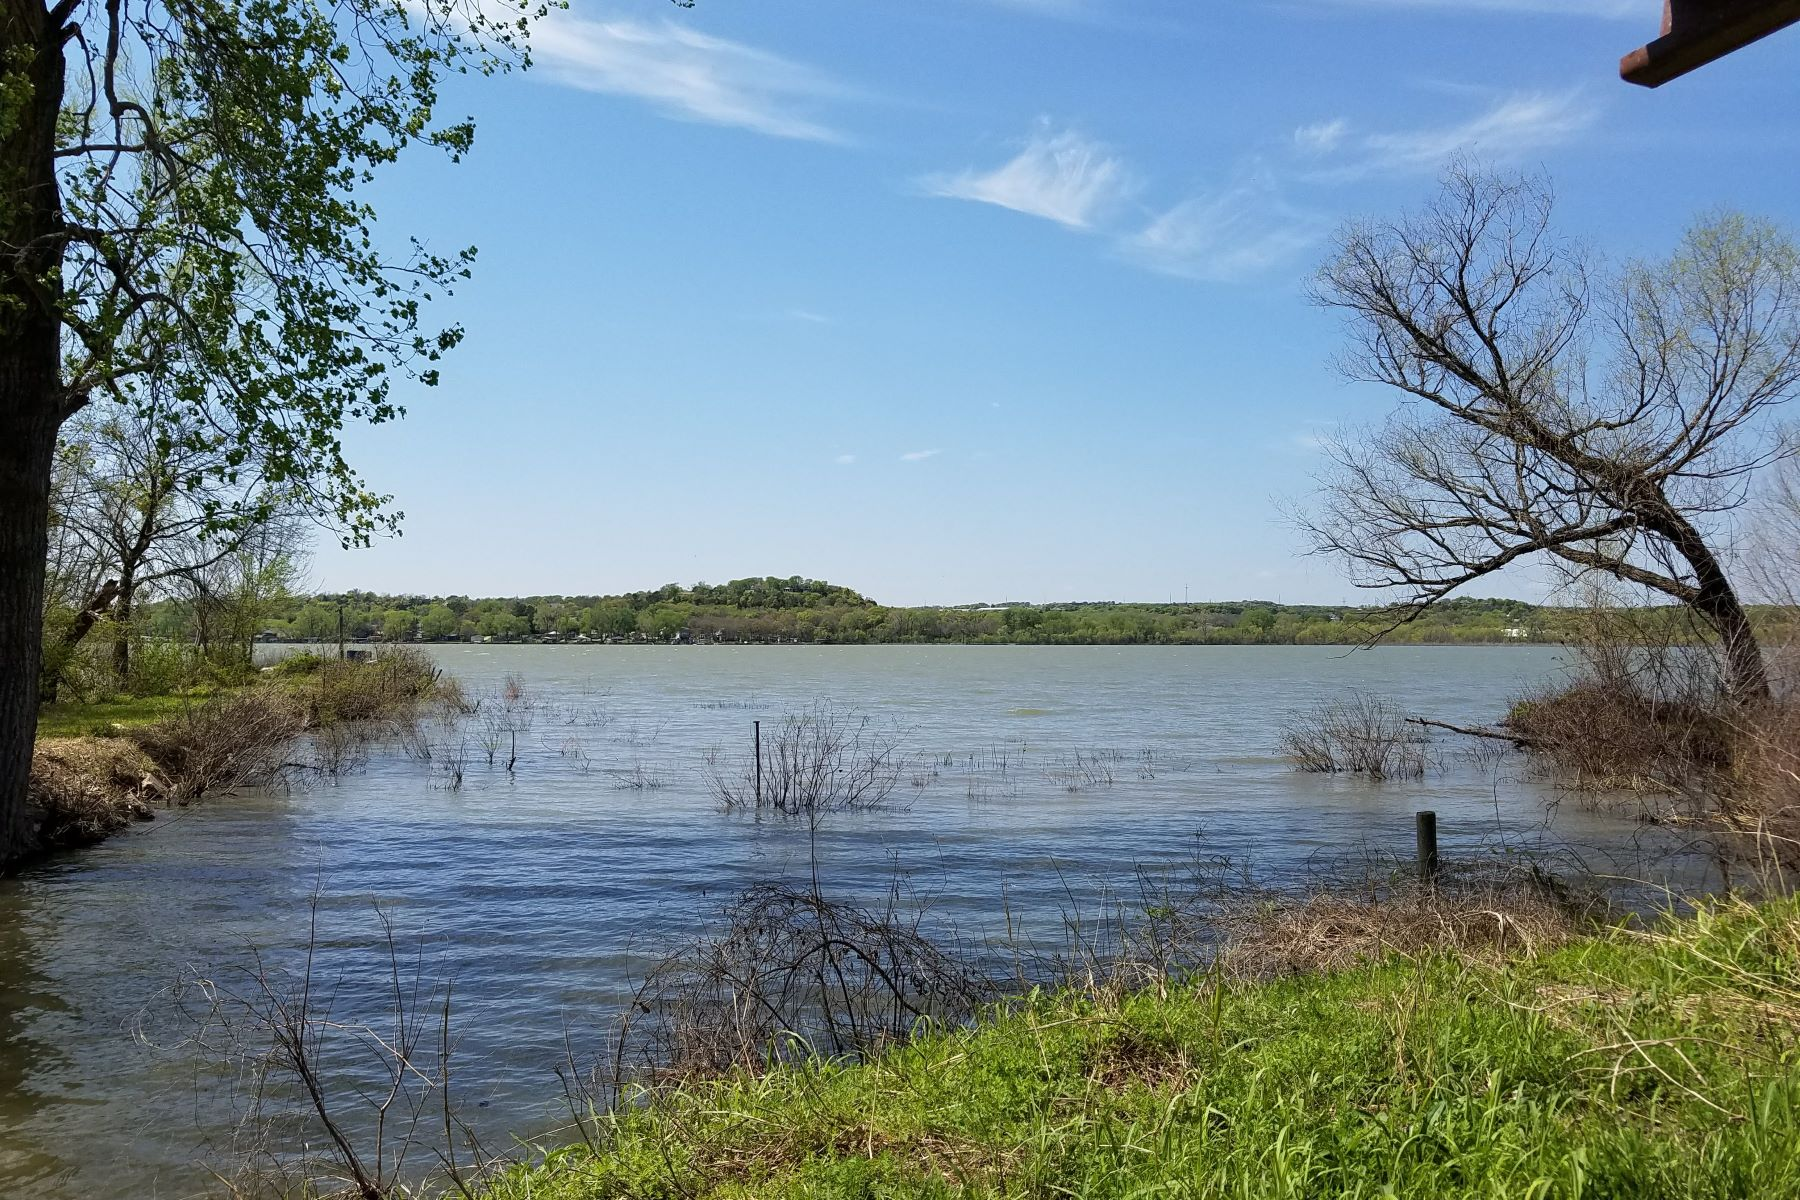 Land for Sale at 2445 E. Lake Drive Weatherford, Texas 76087 United States